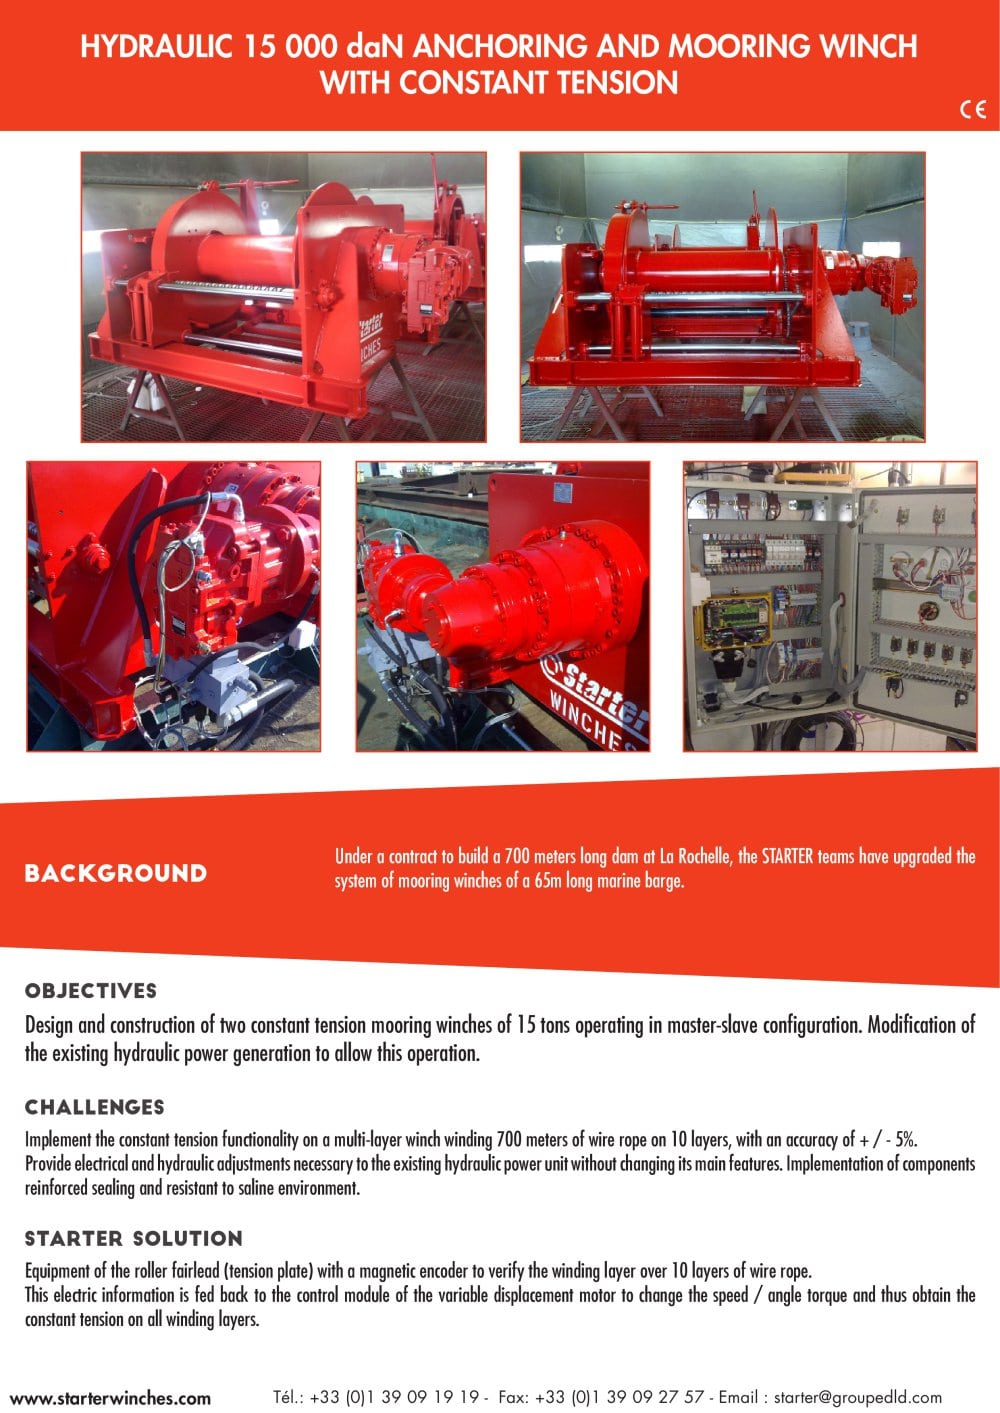 anchoring and mooring winch - 1 / 2 Pages